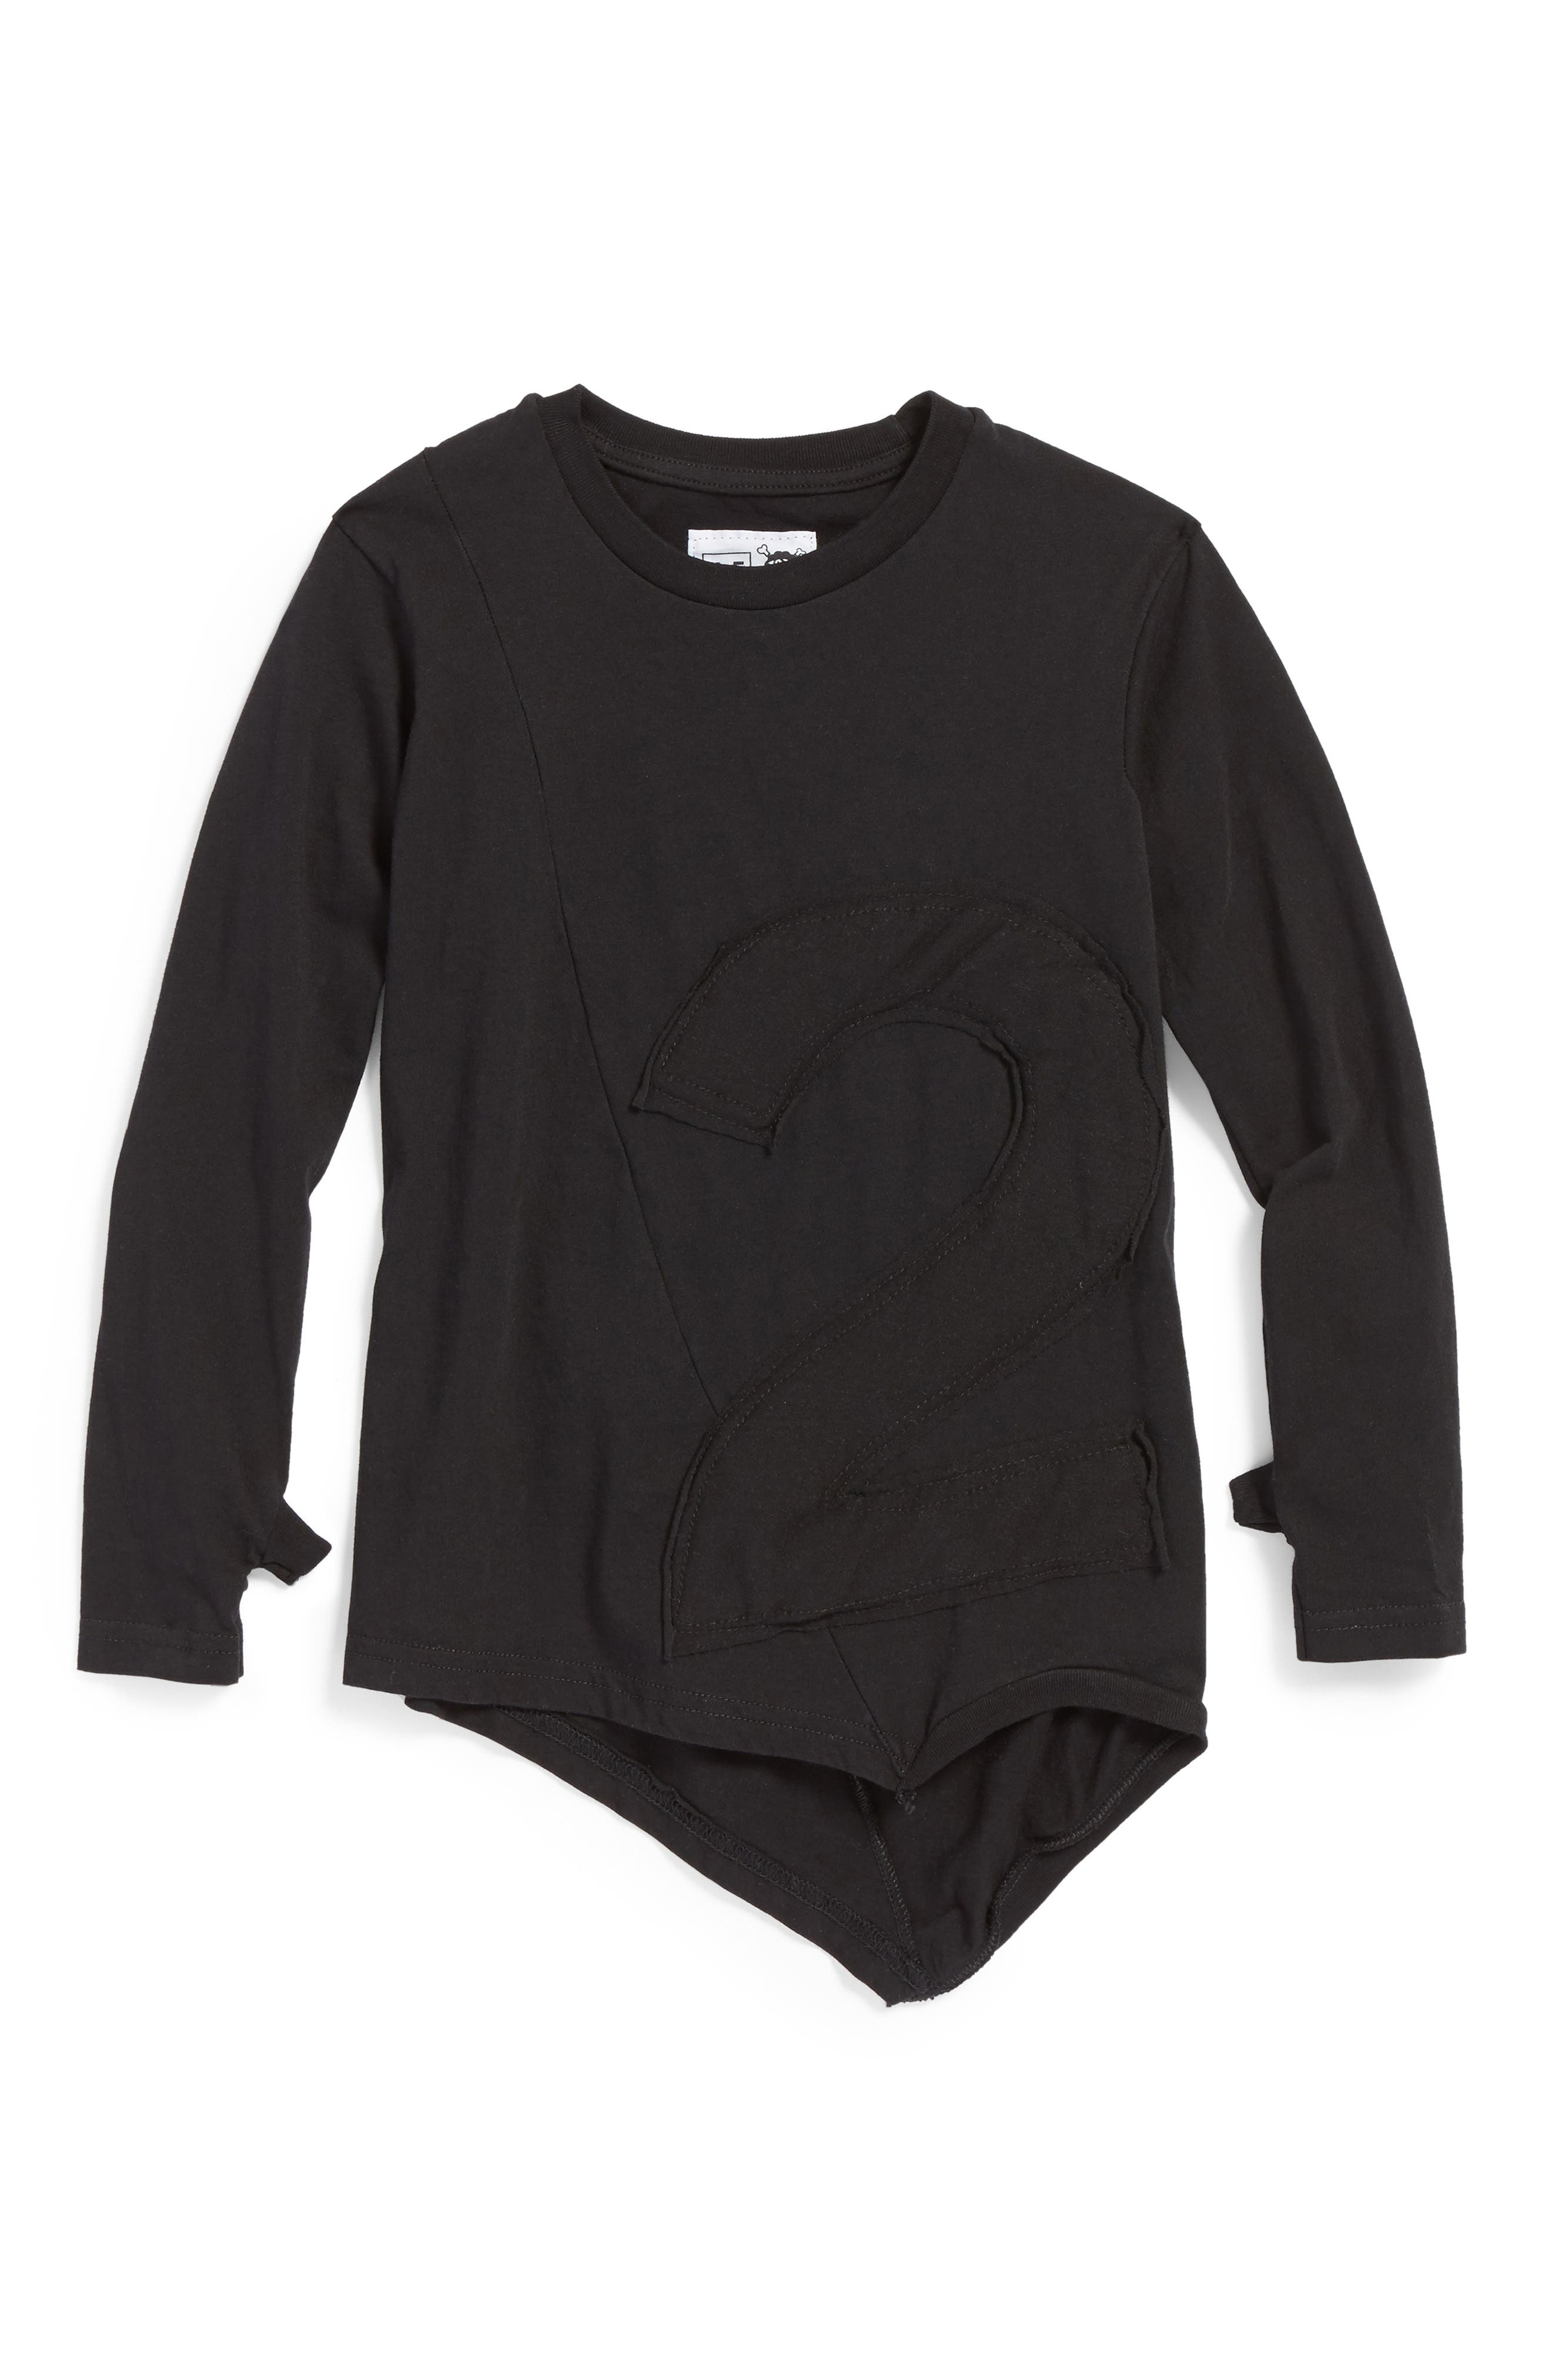 Puffy Number Penguin Shirt,                         Main,                         color, Black